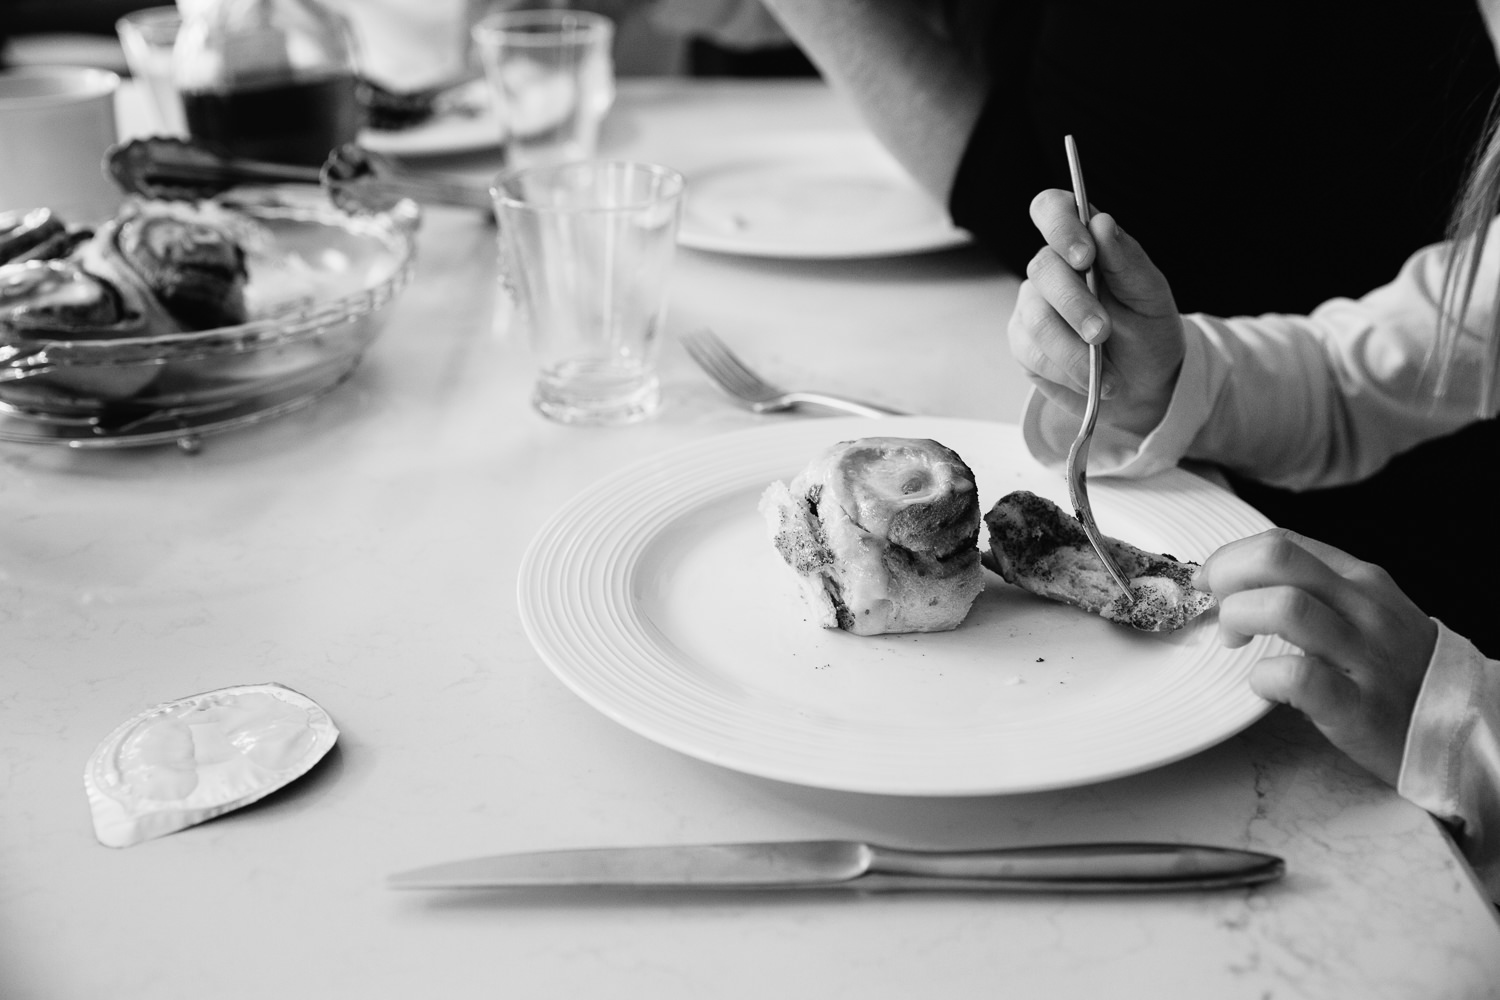 8 year old girl cutting up cinnamon bun while eating brunch with her family - GTA Lifestyle Photos